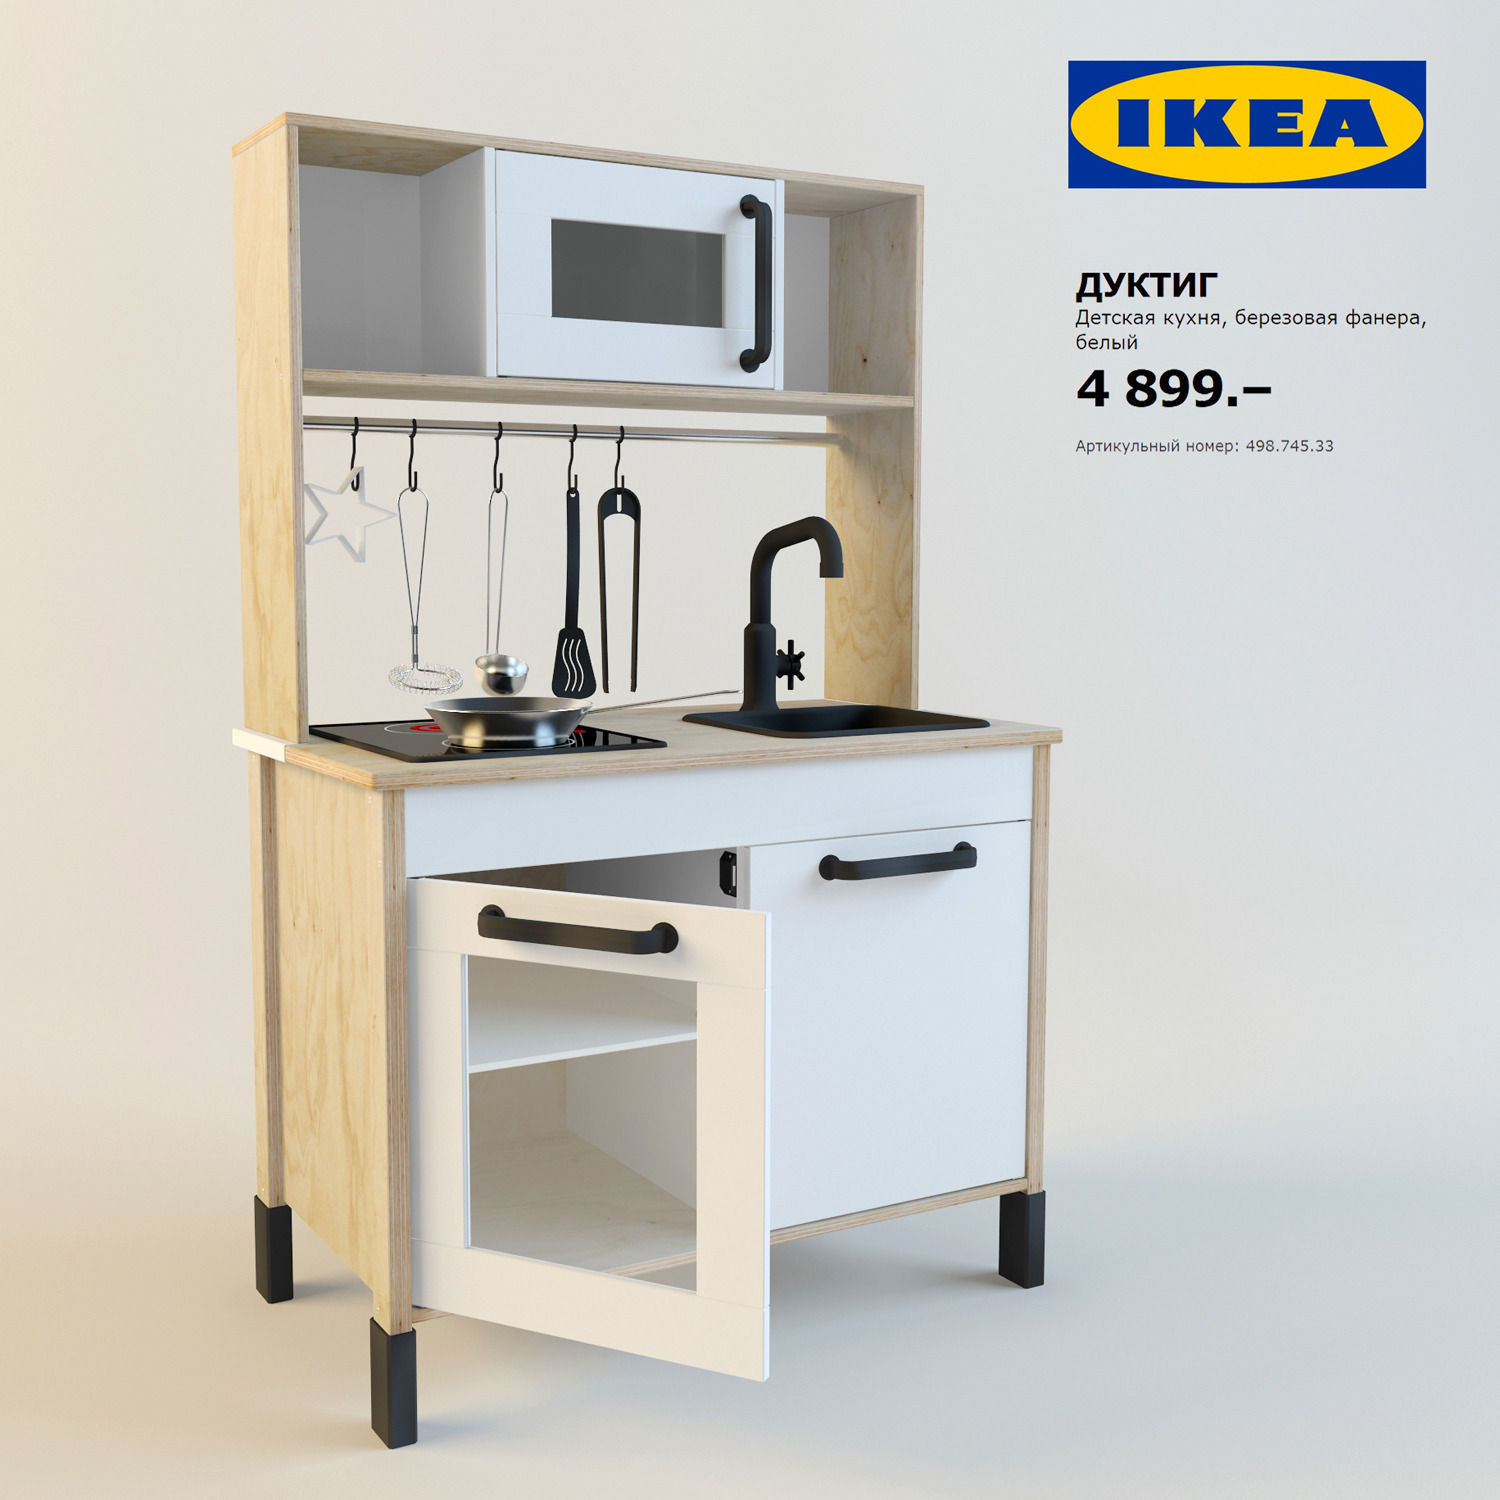 Ikea duktig play kitchen 3d model 3ds - Ikea wooden kitchen playset ...